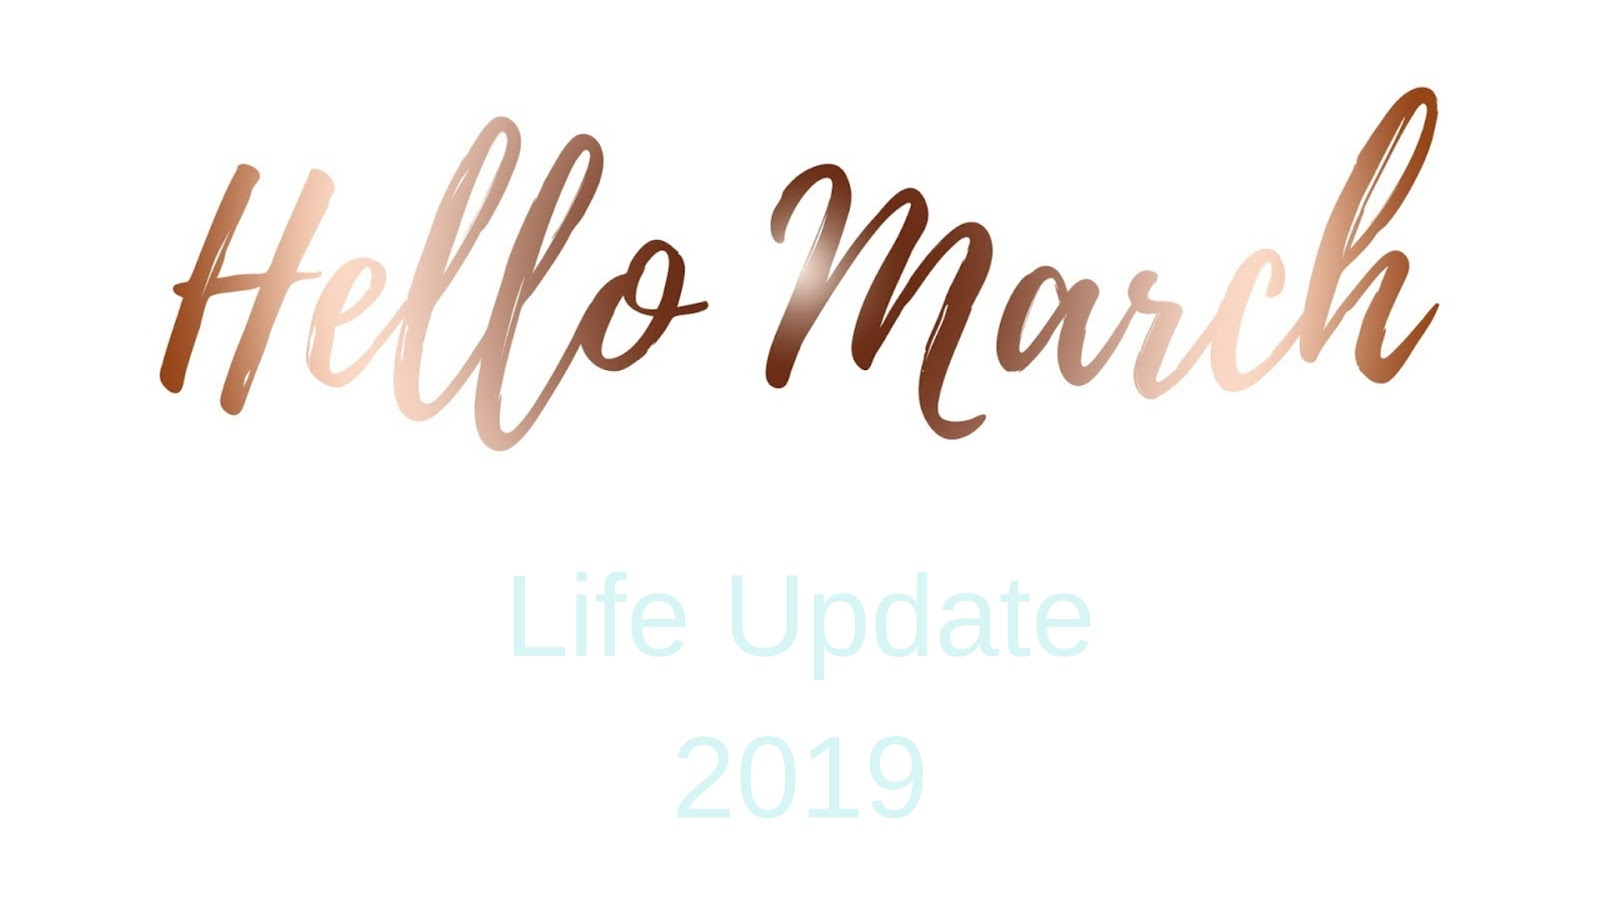 Stephanie Kamp Blog: March Life Update 2019